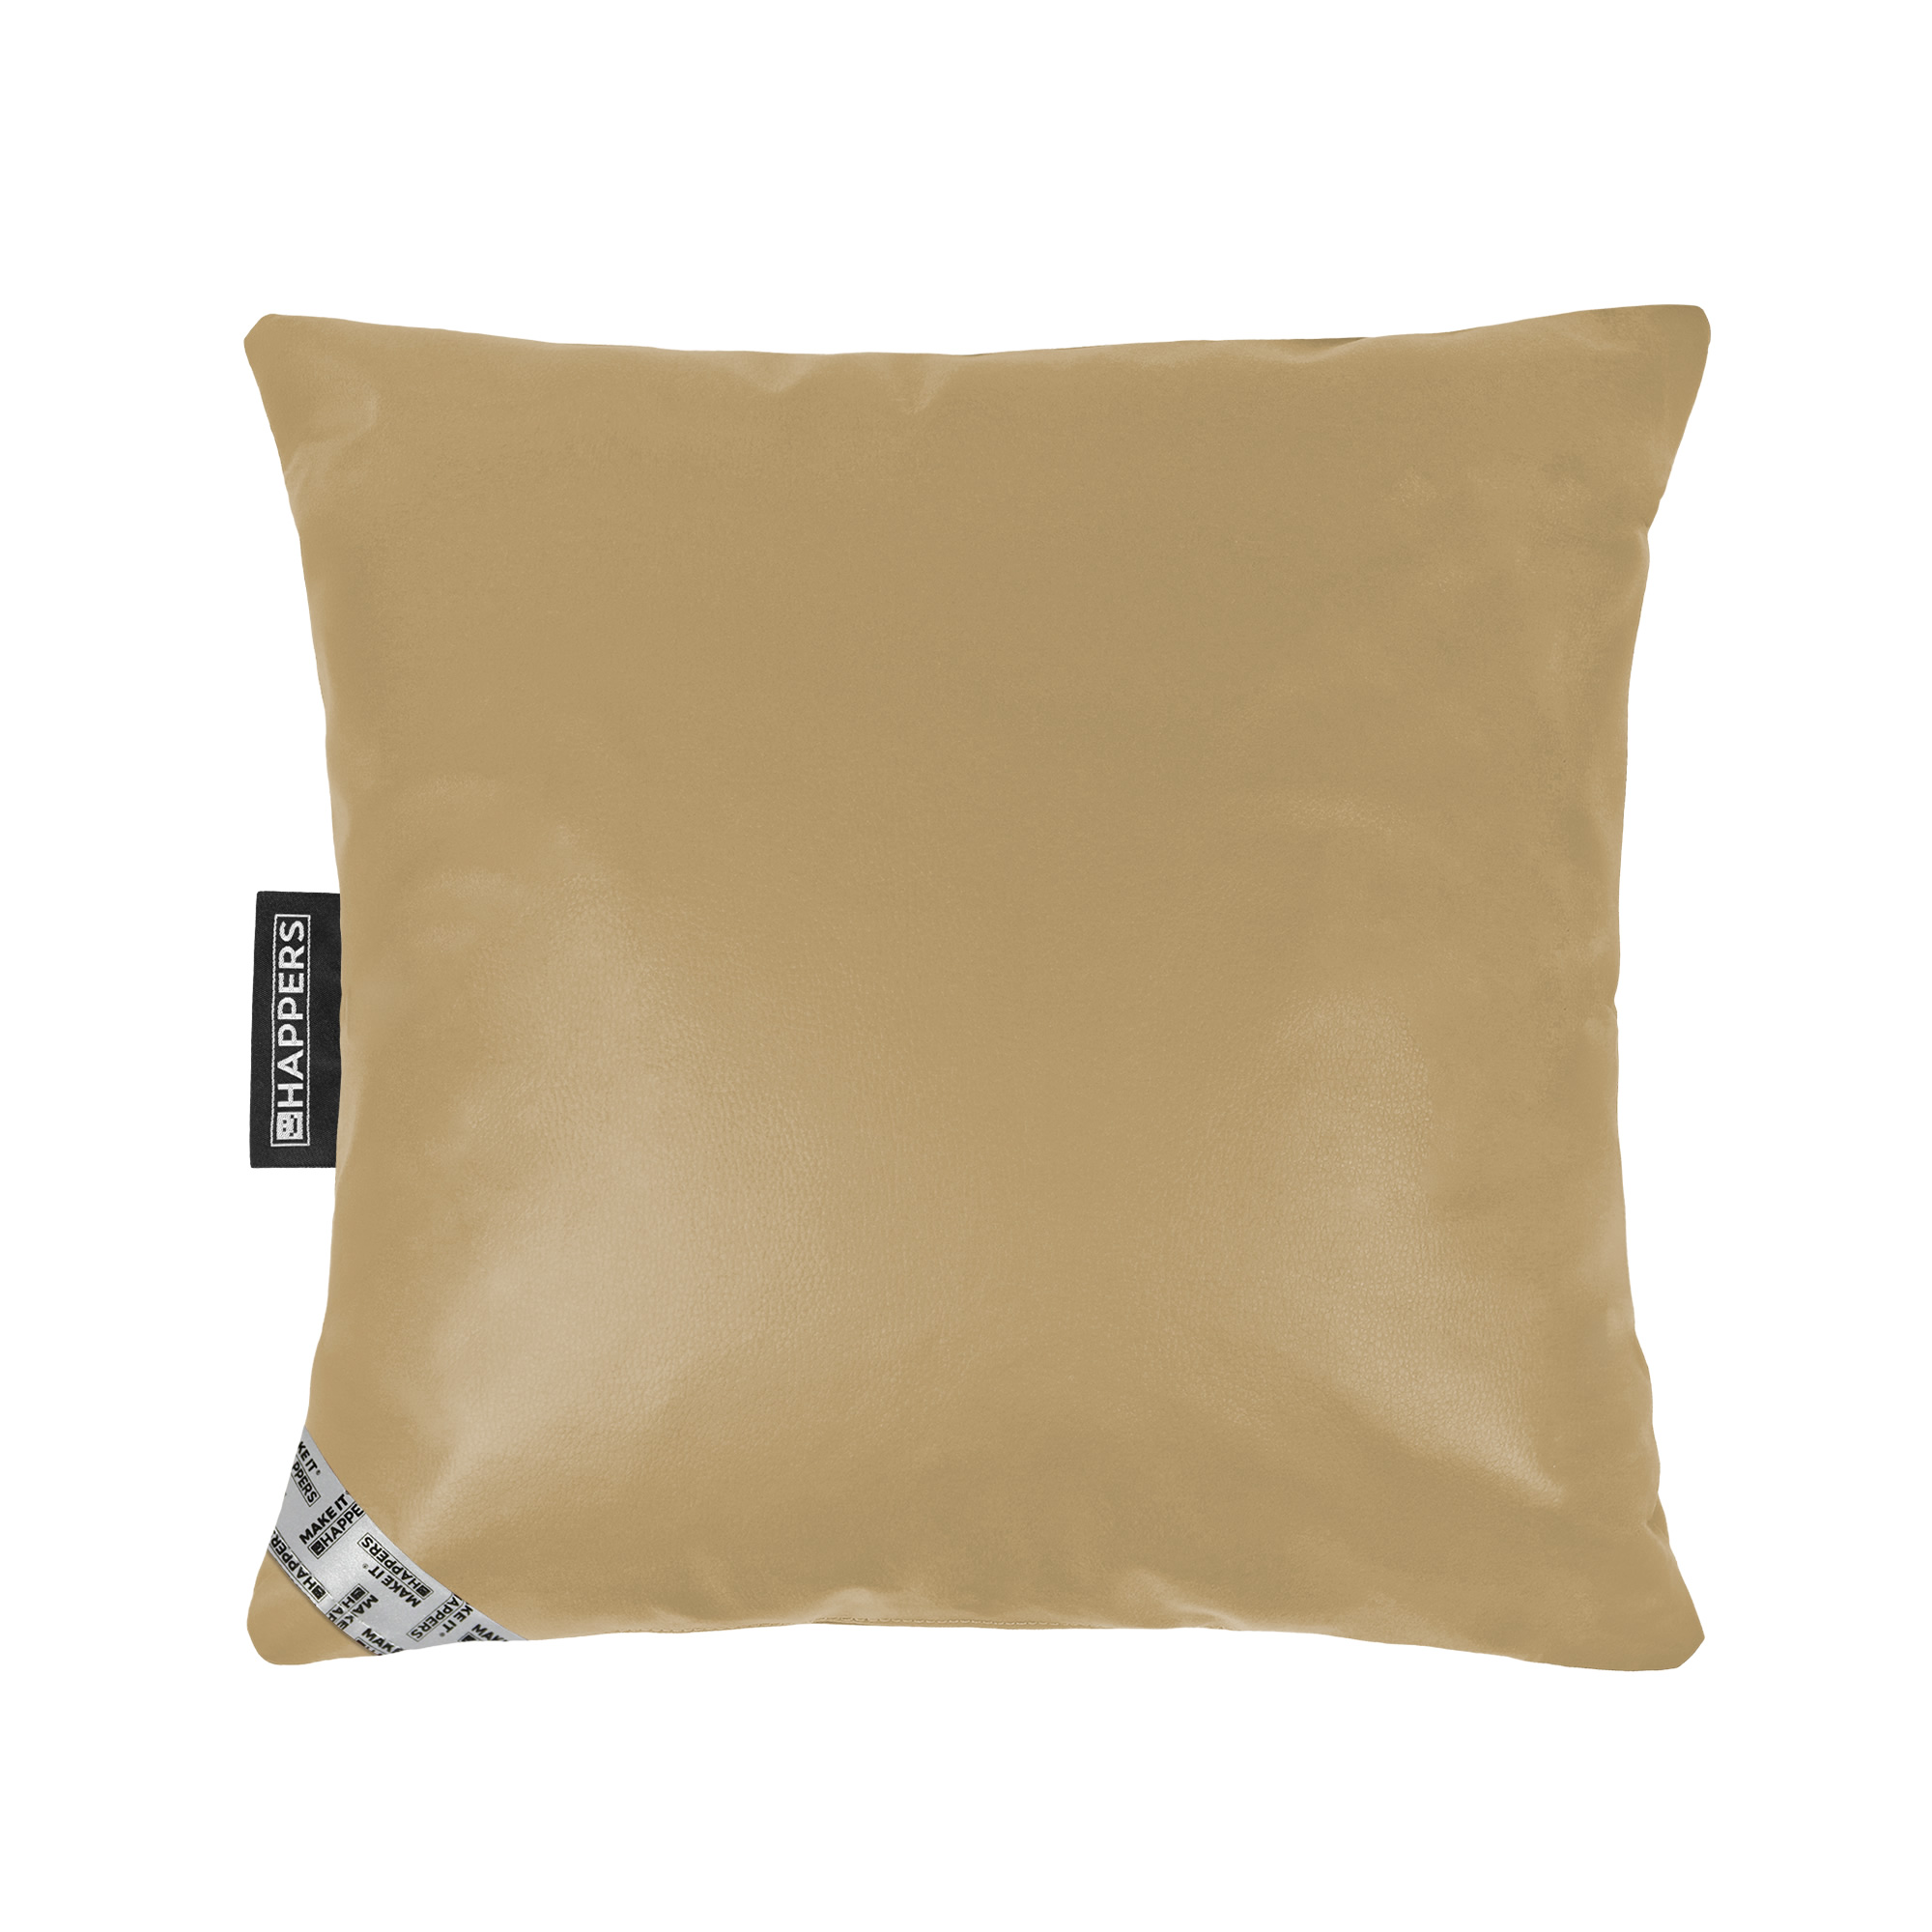 Cojín 45x45 Polipiel Indoor Beige Happers | Happers.es